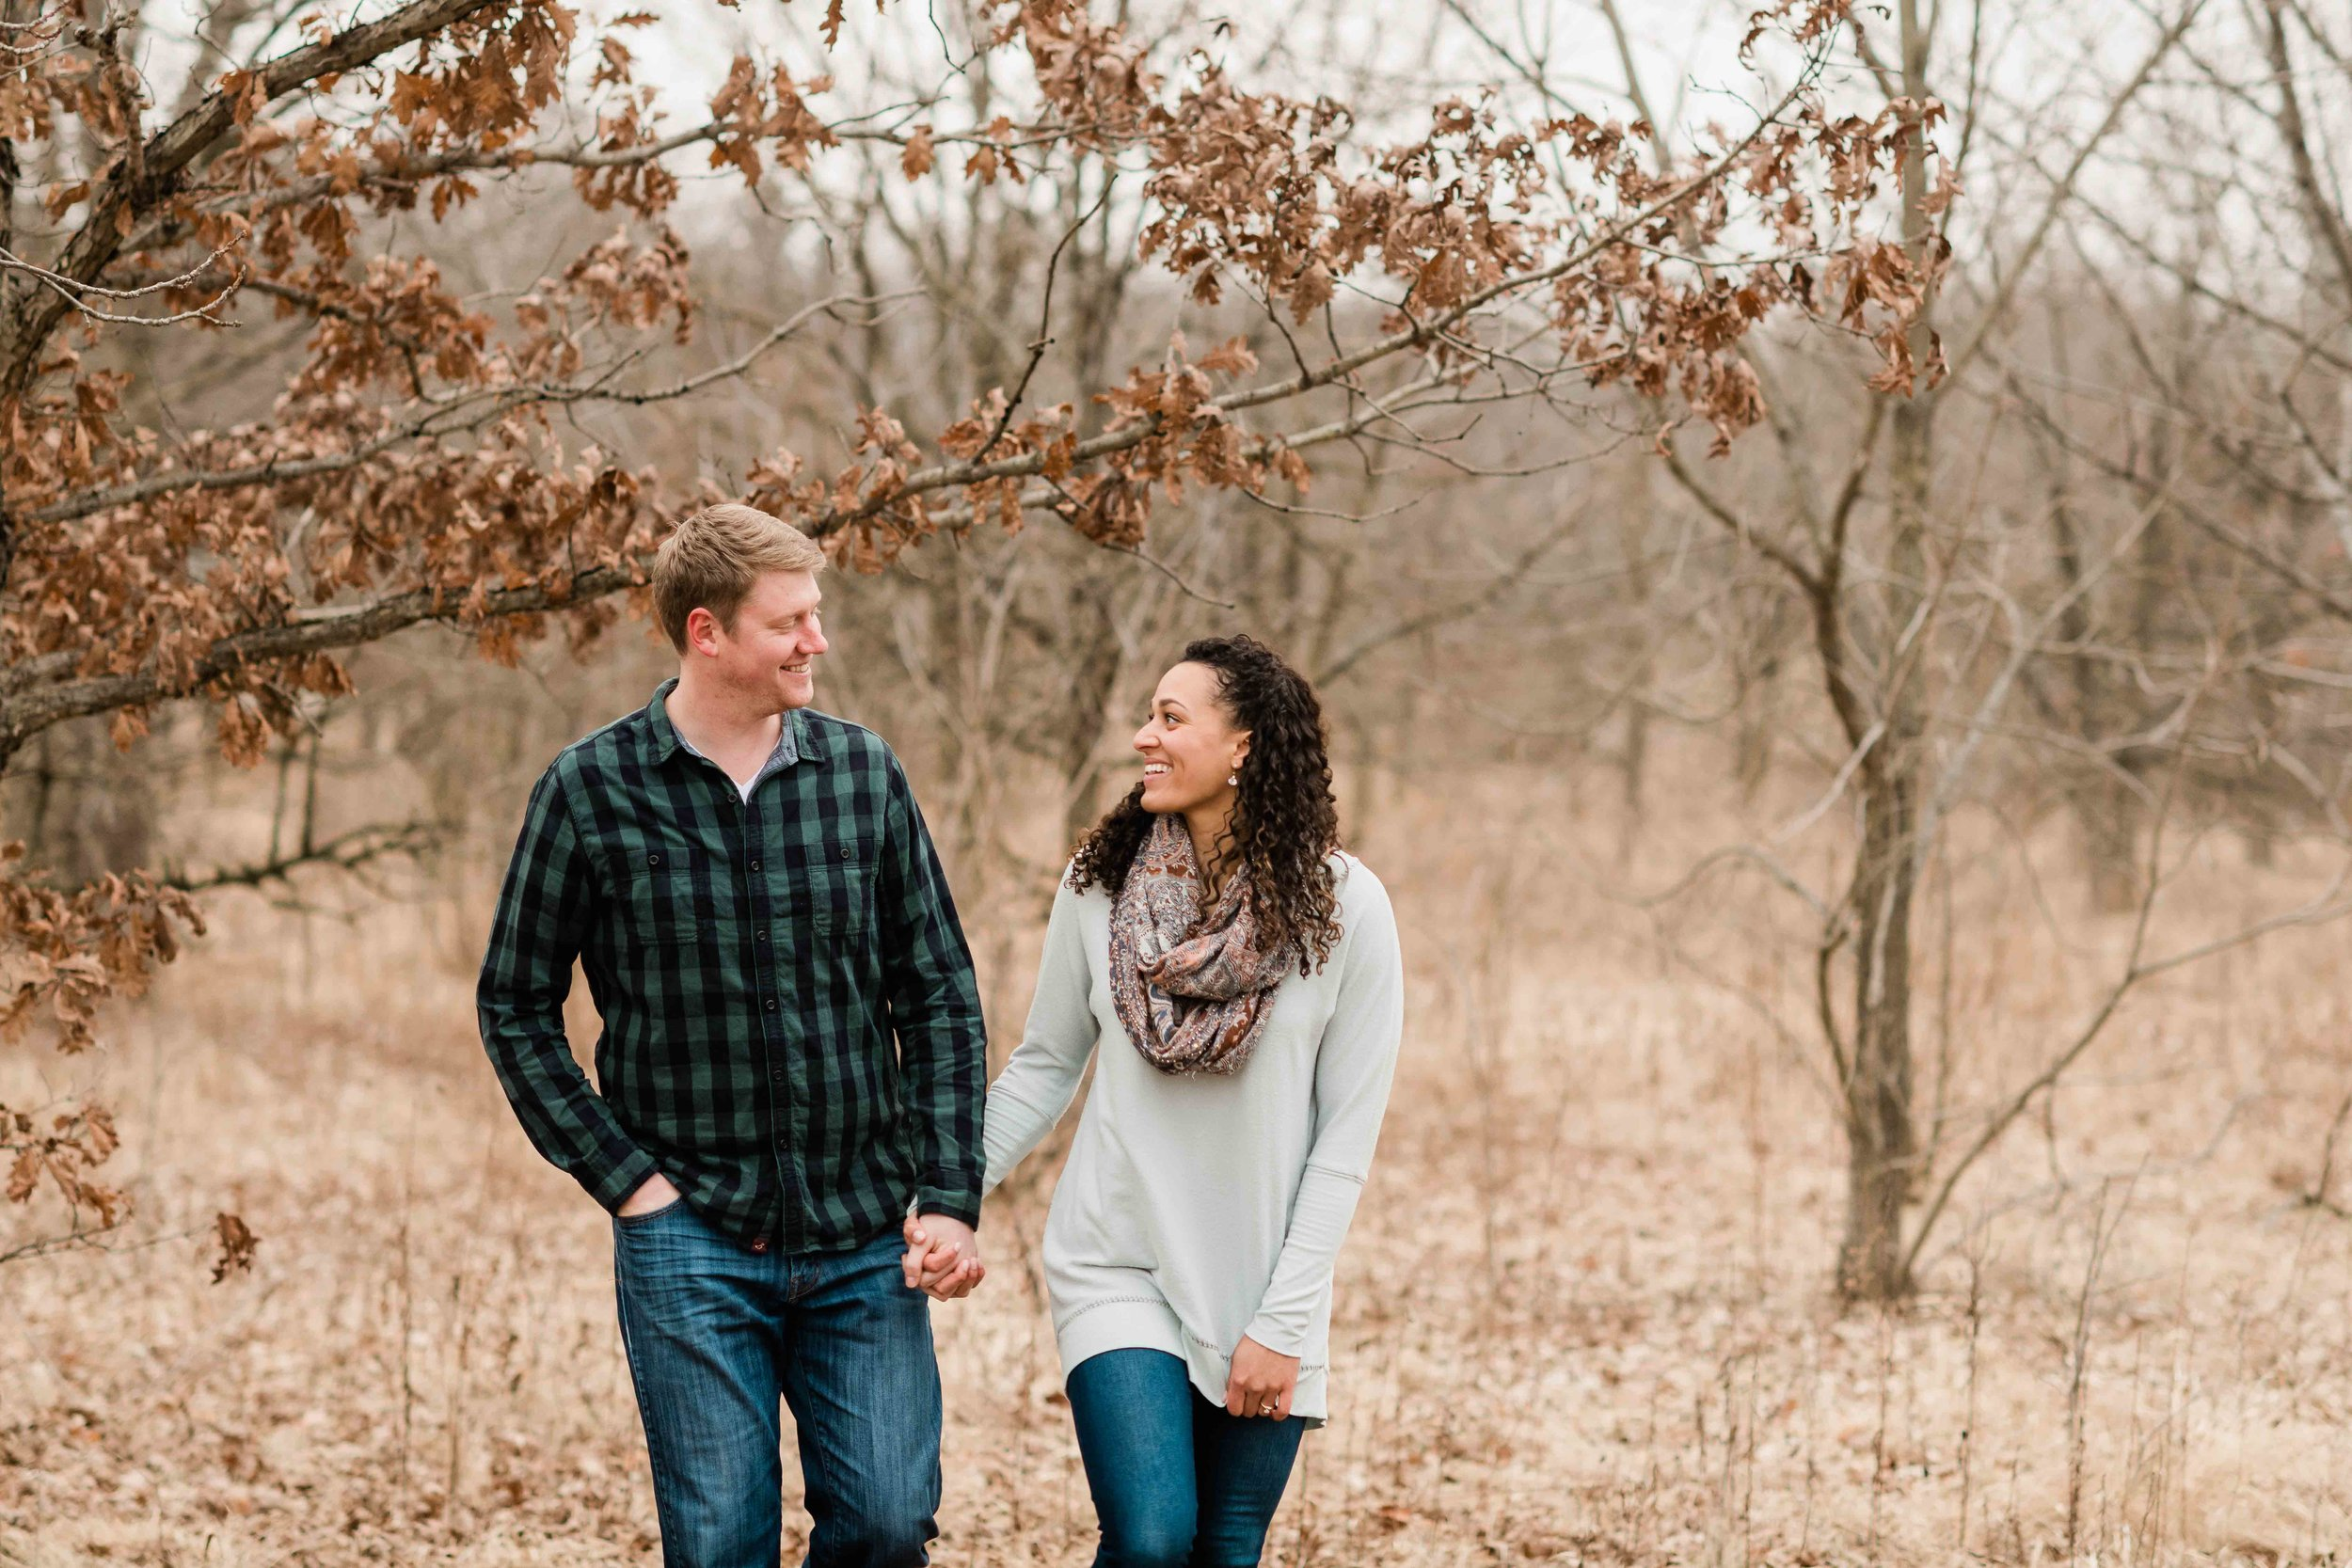 Engaged couple walking in a field before winter